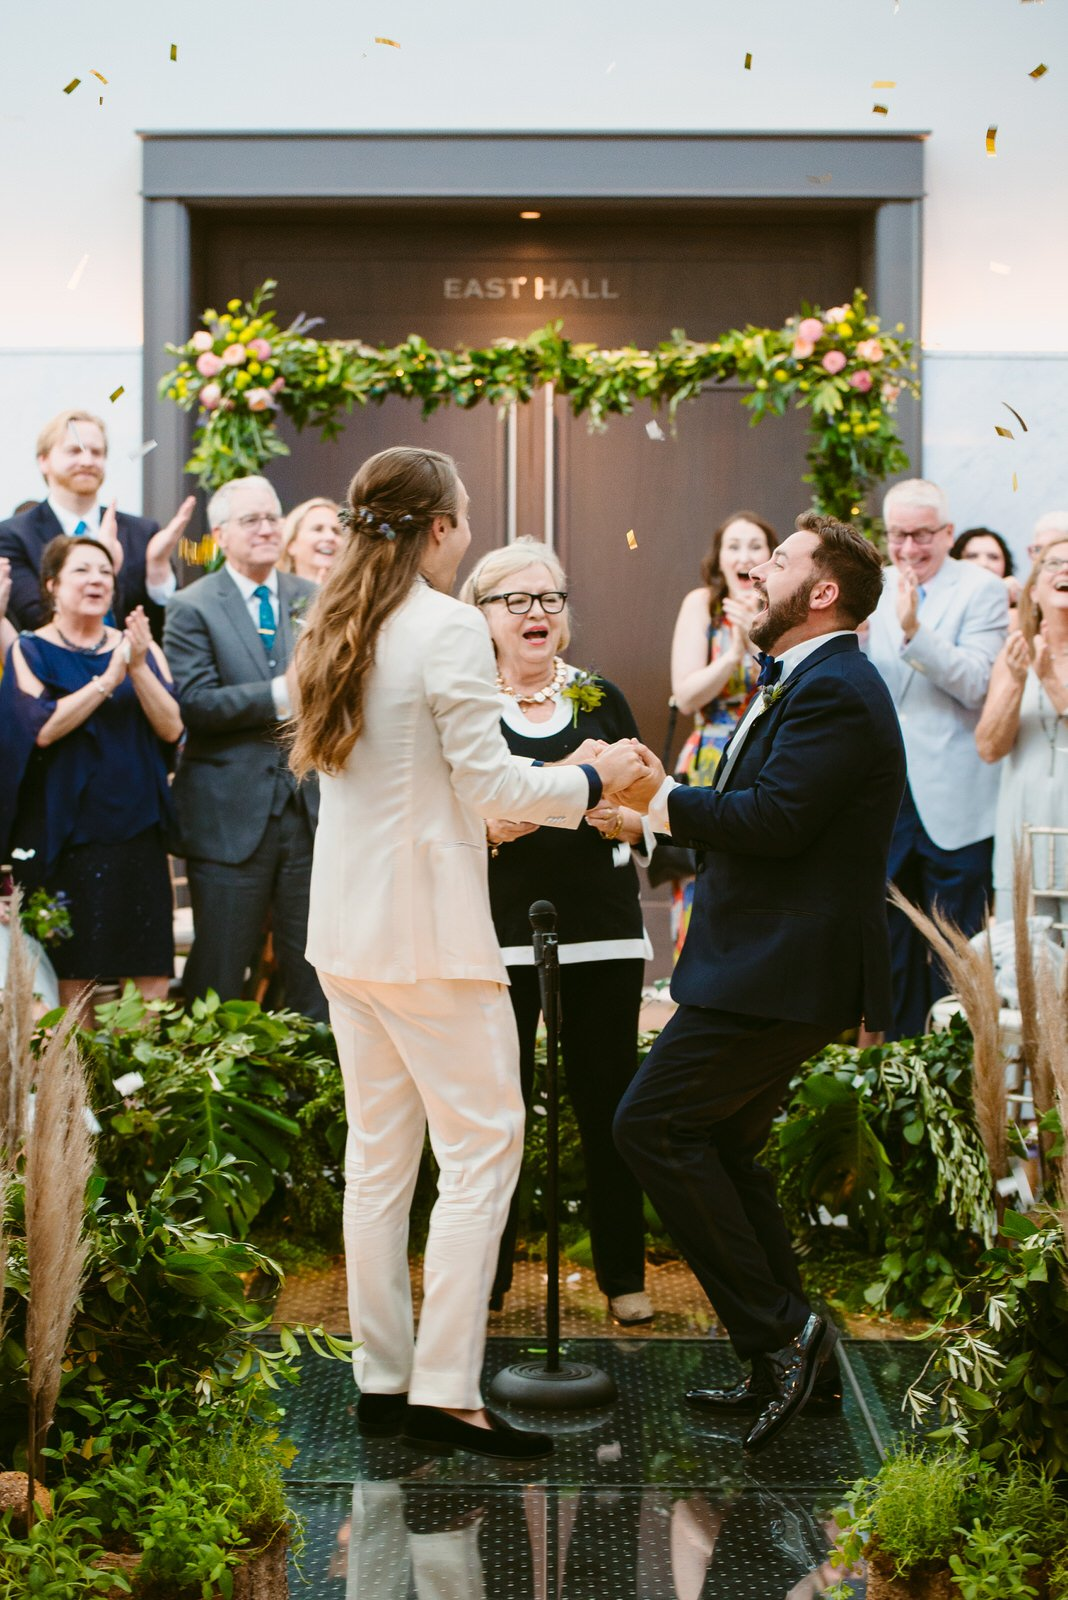 groom in white tux and groom in classic tux hold hands and celebrate amid clapping wedding guests and swirling confetti at Limestone Hall